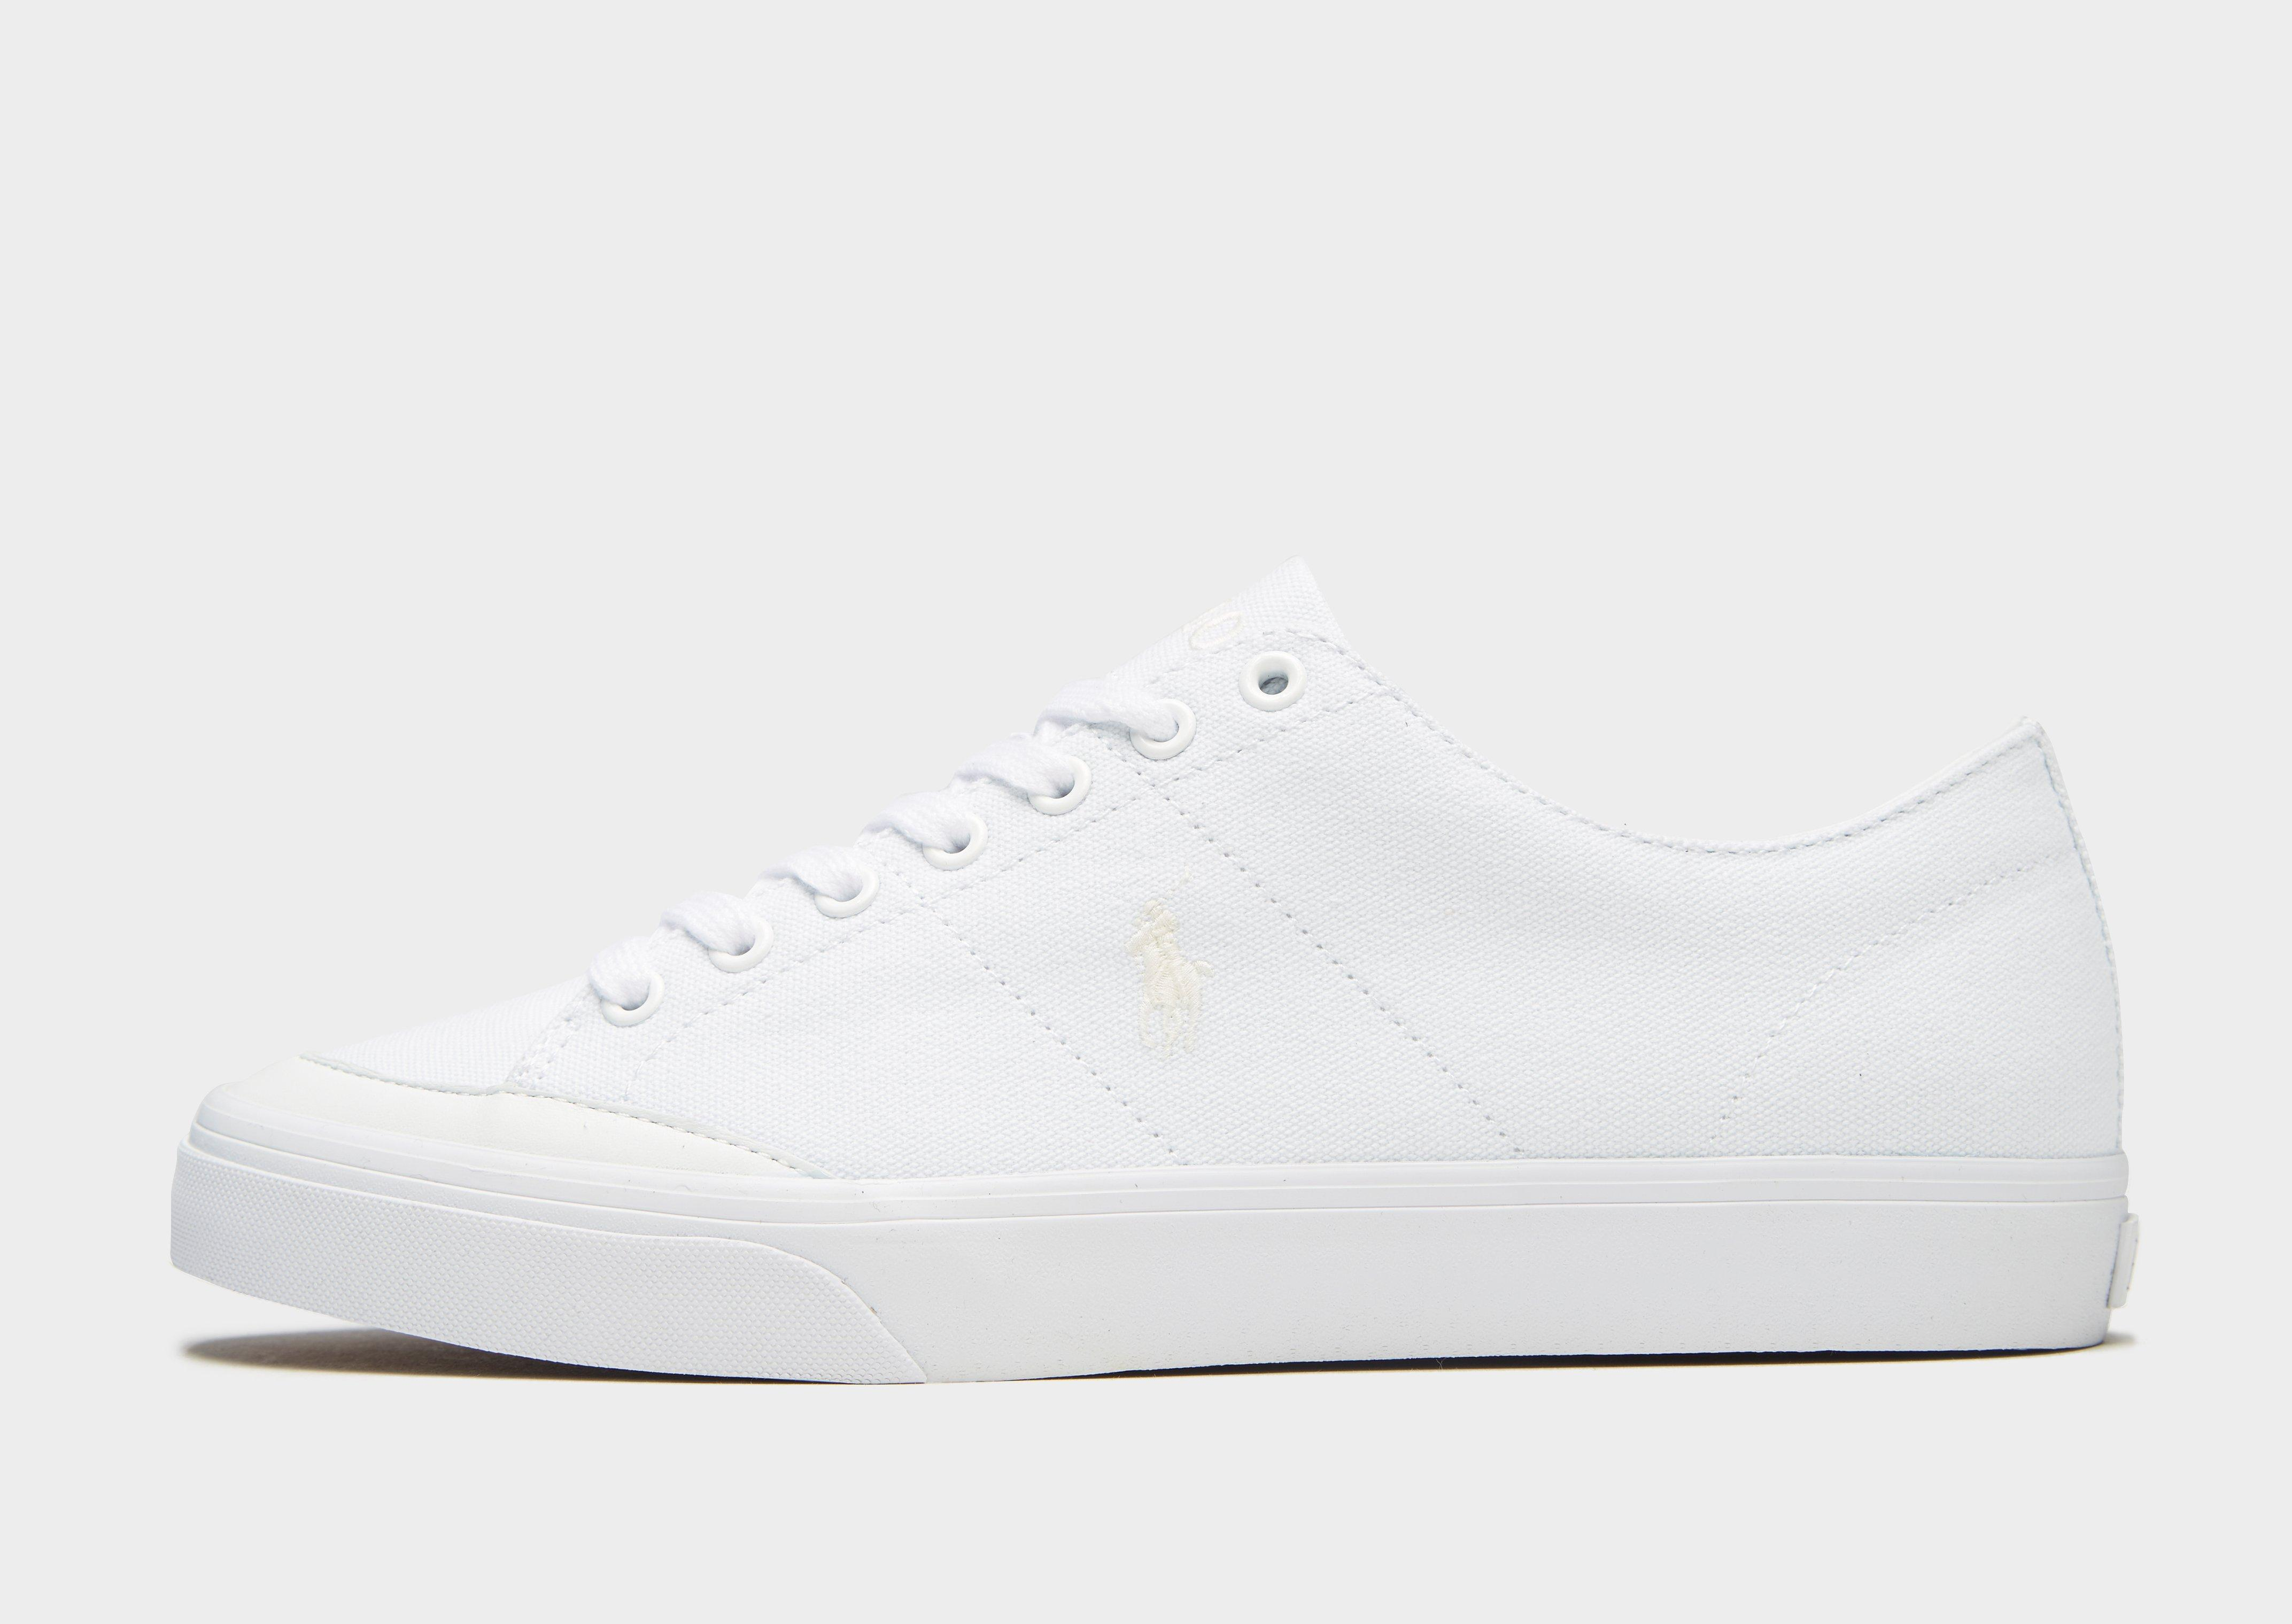 Polo Ralph Lauren Sherwin Canvas Low-top Sneaker in White for Men - Lyst c1bdbce8f57